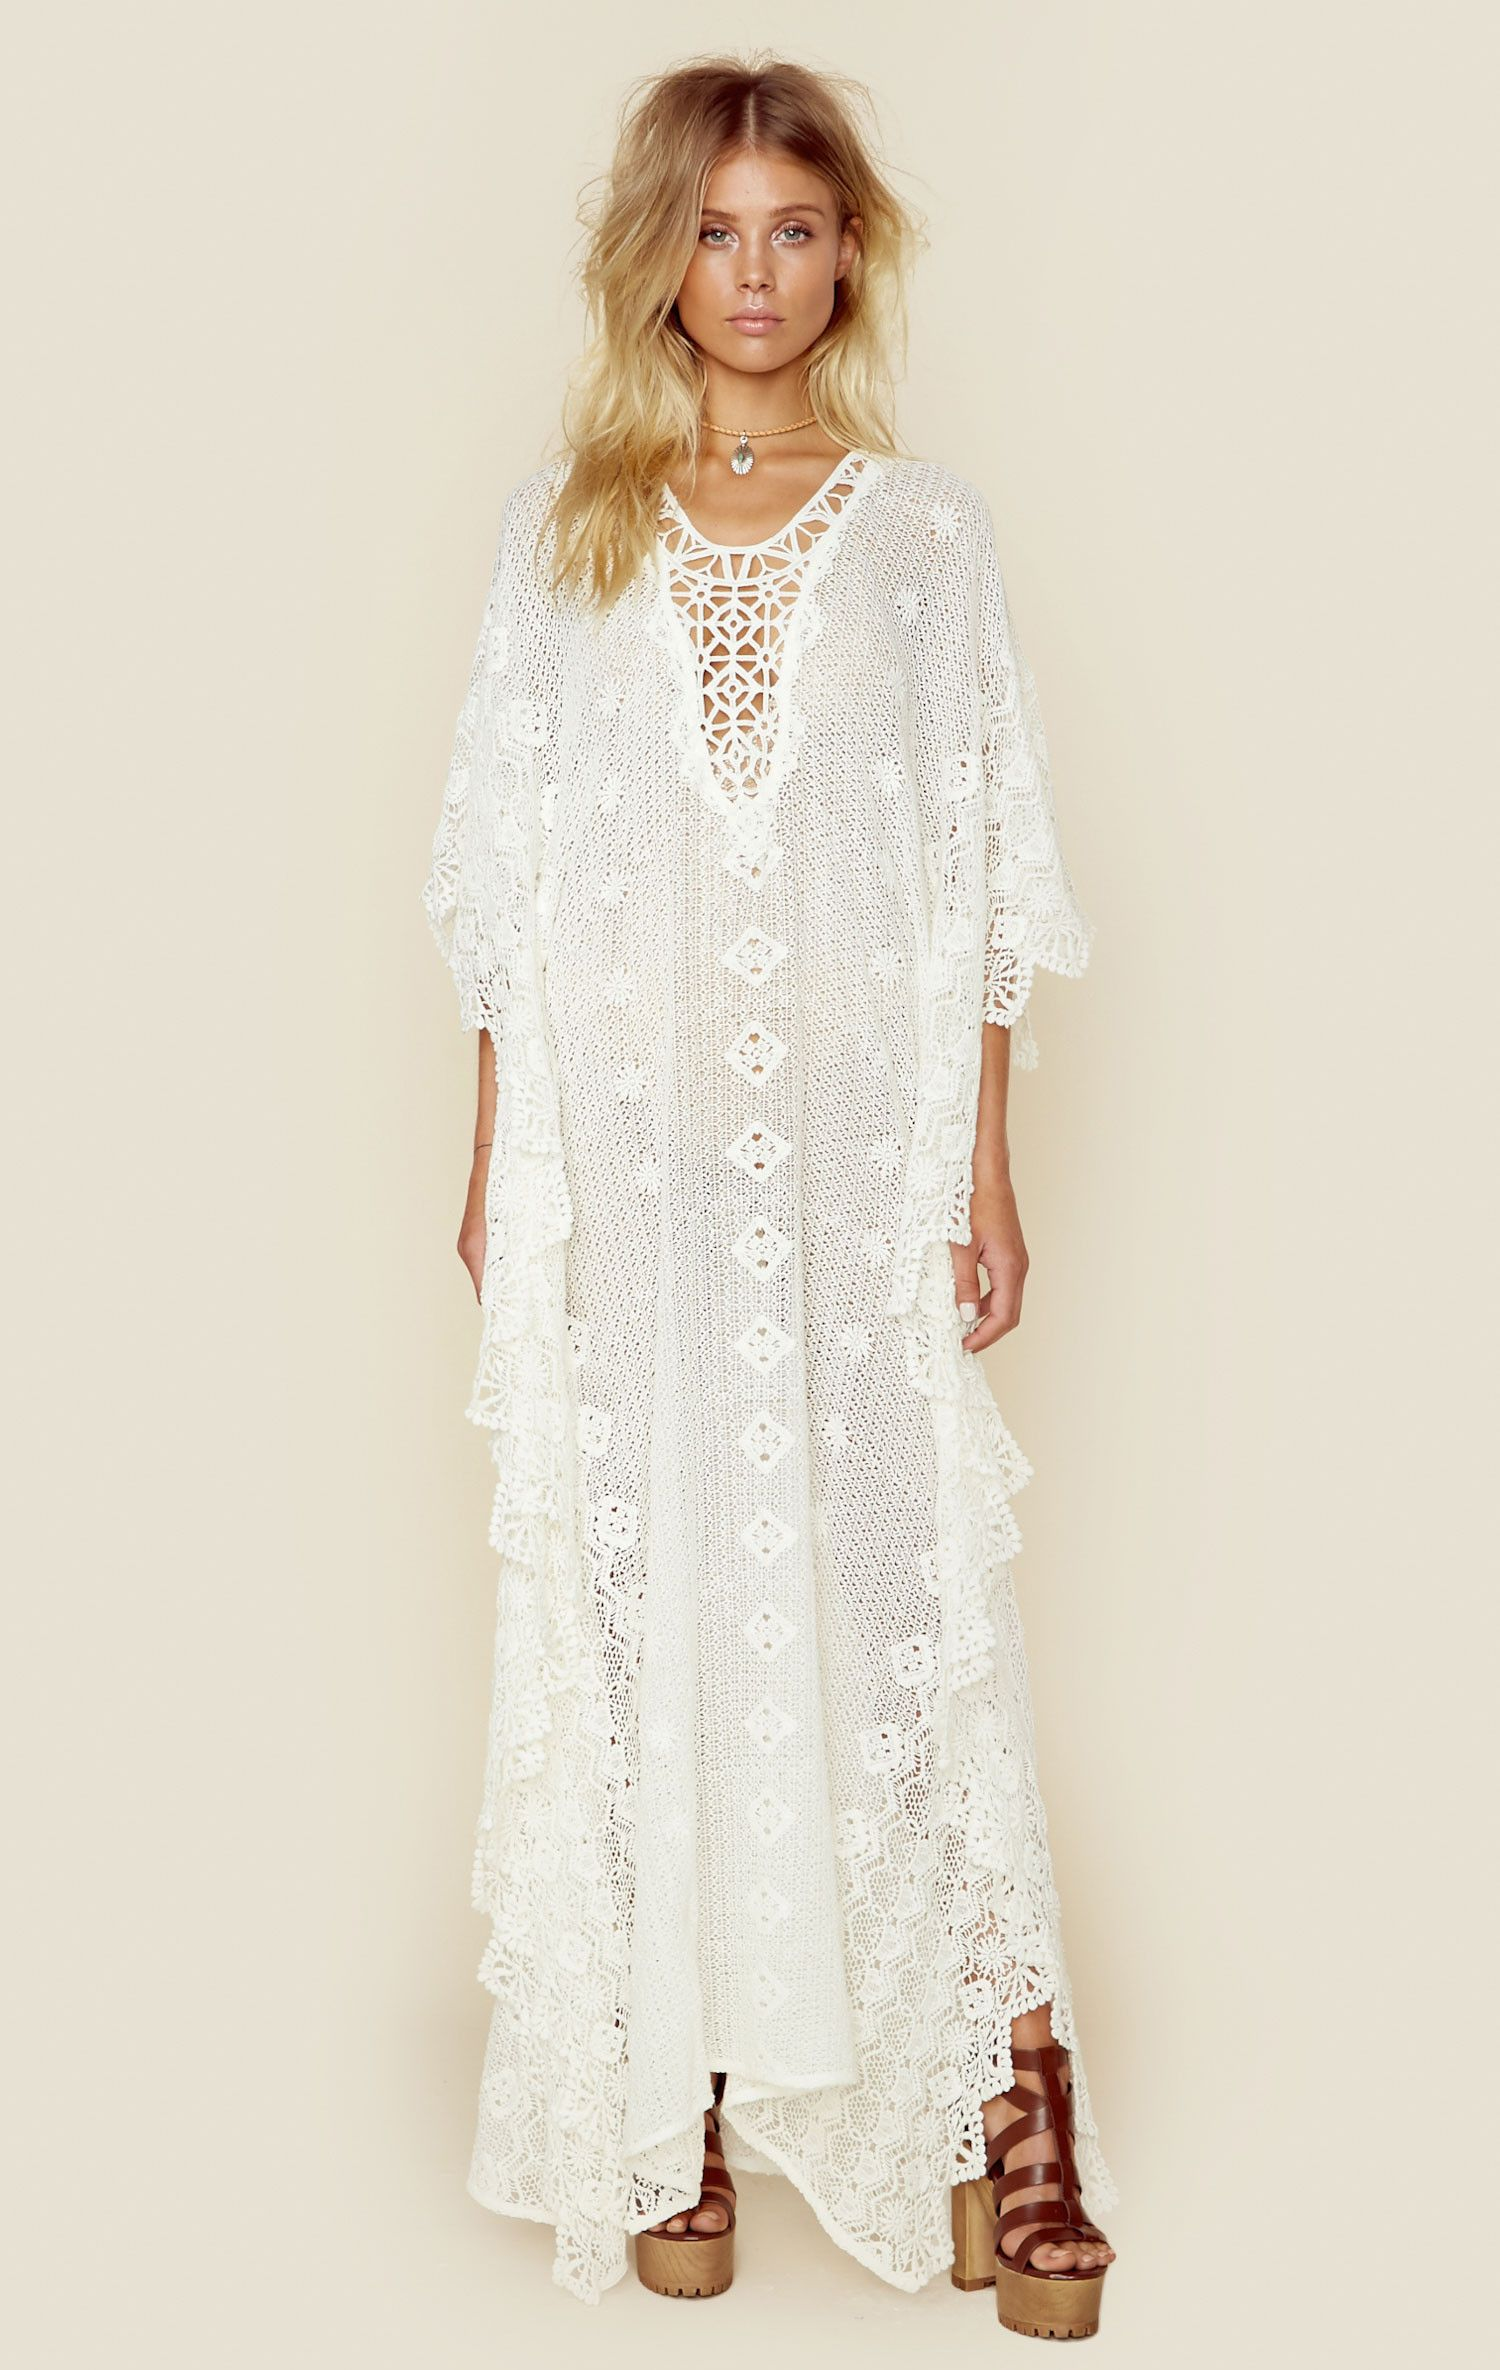 51c67510be RITUAL MYKONOS KAFTAN Hot Summer Outfits, Culture Clothing, Romantic  Outfit, Boho Outfits,